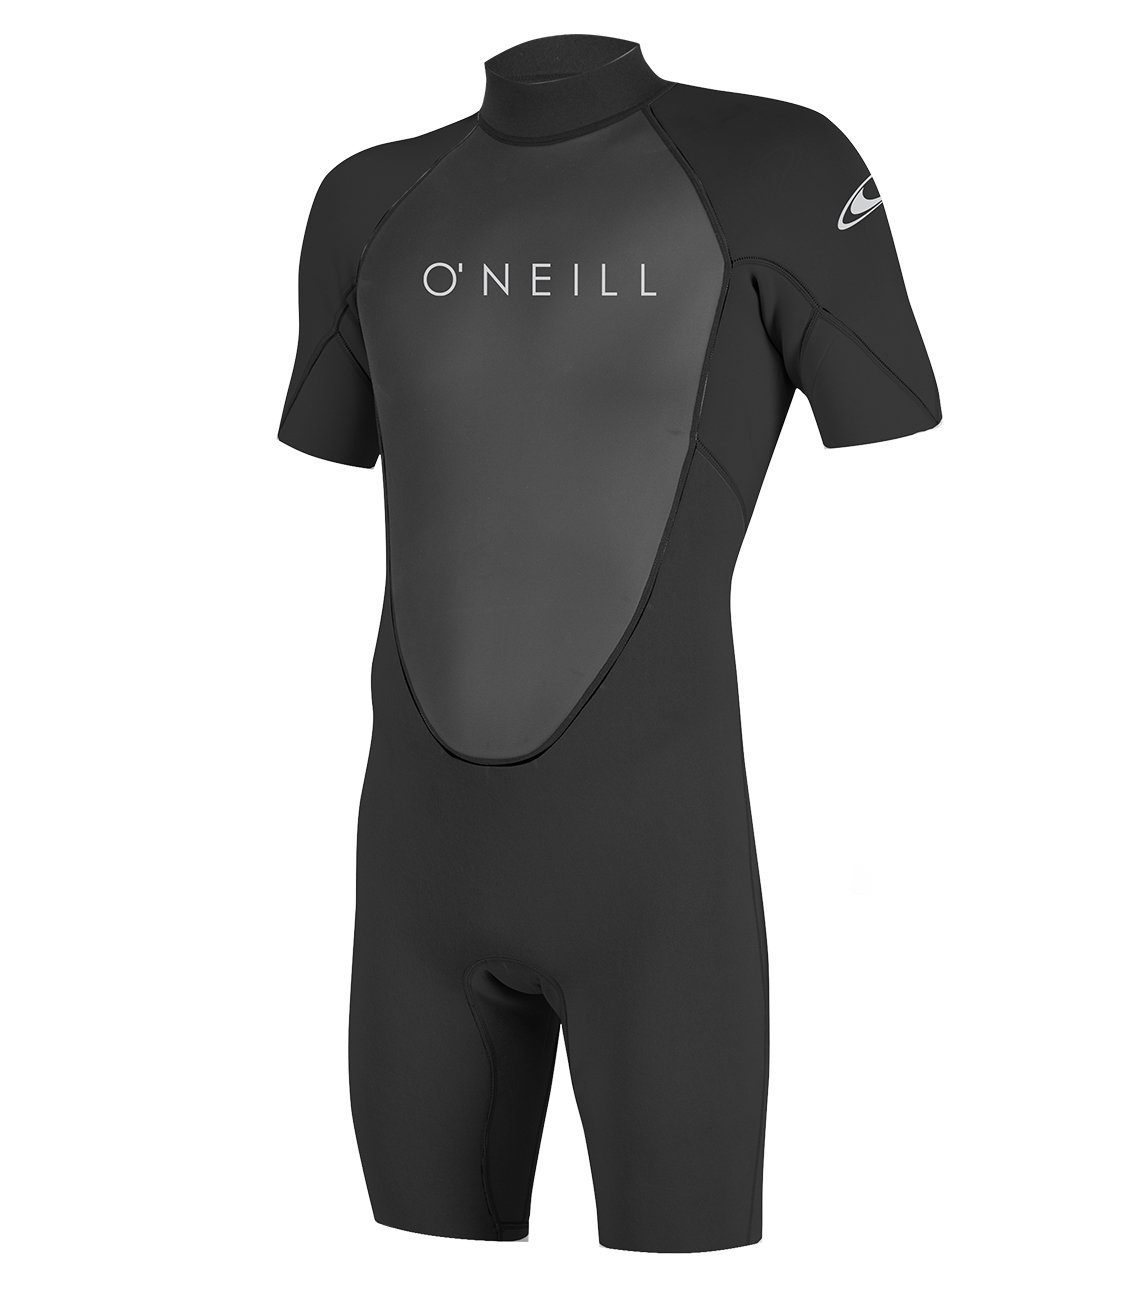 O'Neill Men's Reactor-2 2mm Back Zip Short Sleeve Spring Wetsuit, Black, Large Short by O'Neill Wetsuits